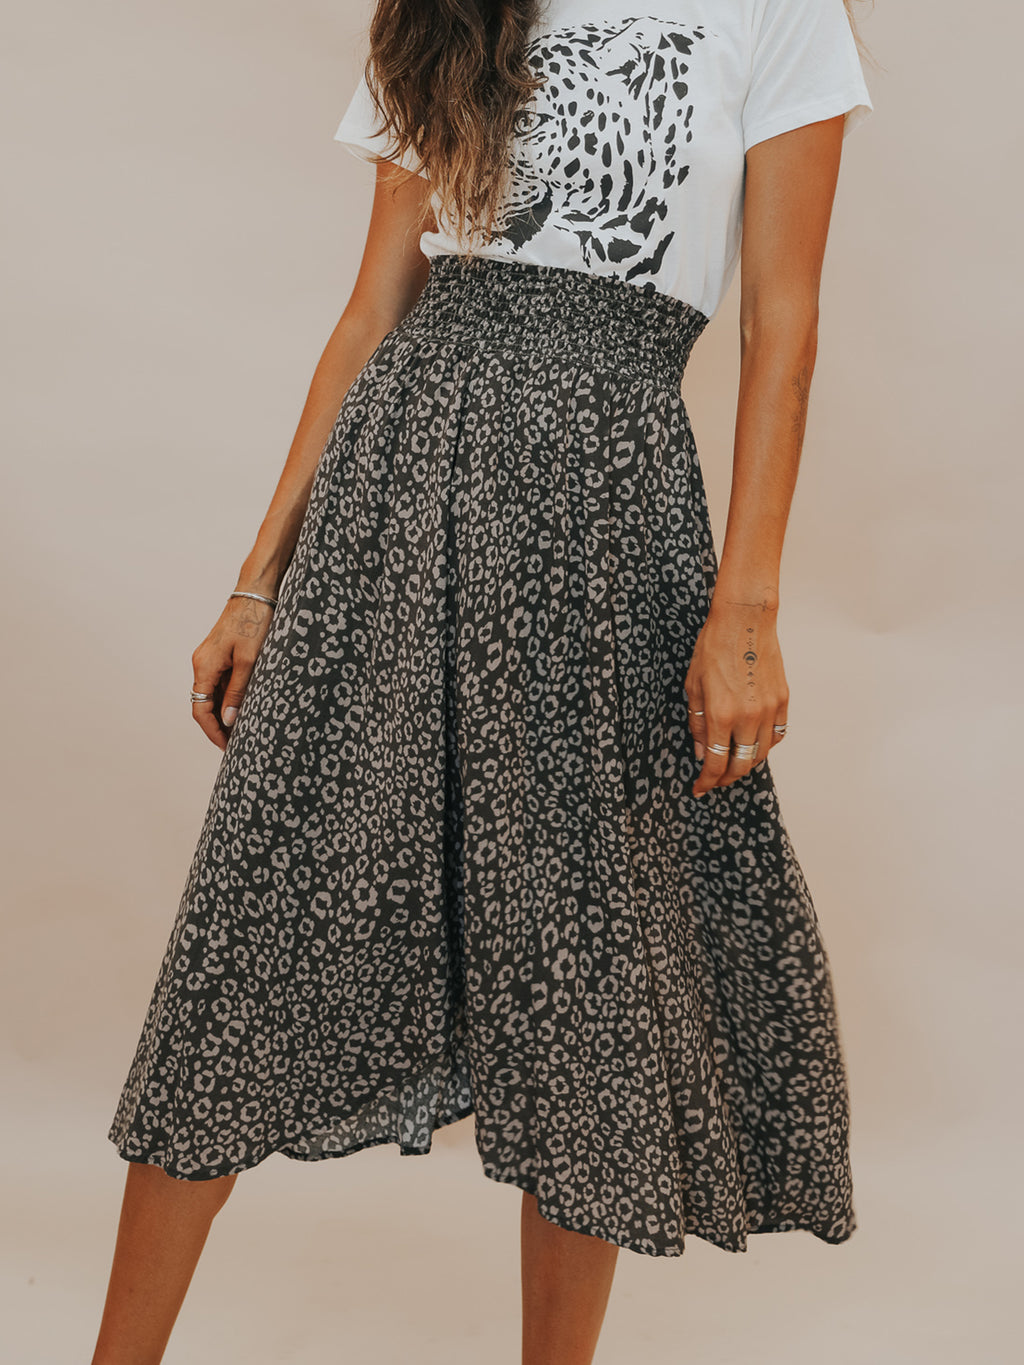 Leopard Midi Skirt - Stitch And Feather